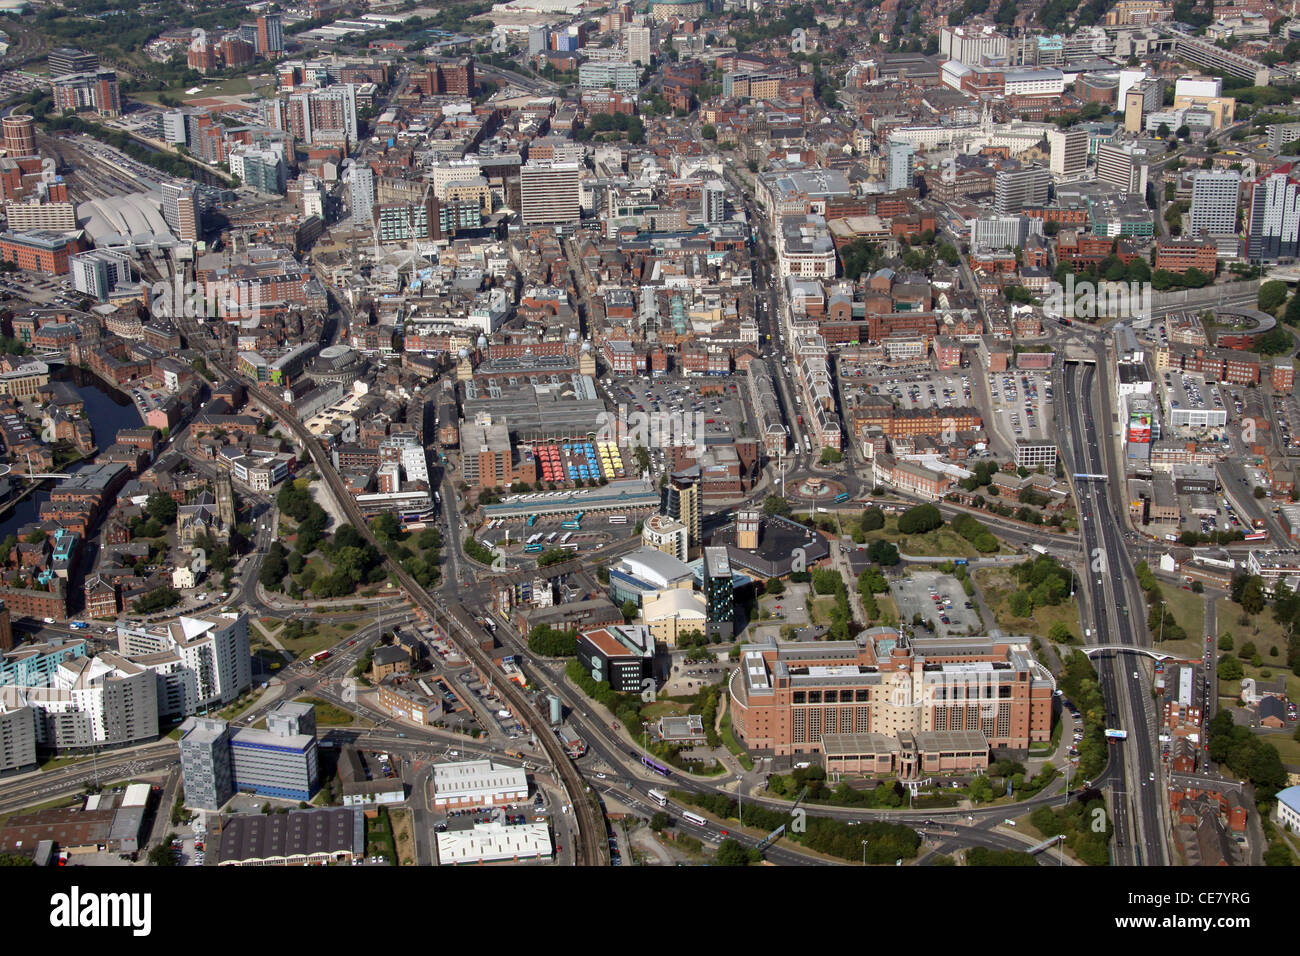 Aerial Photograph of Leeds City Centre from the east looking west across the city - Stock Image